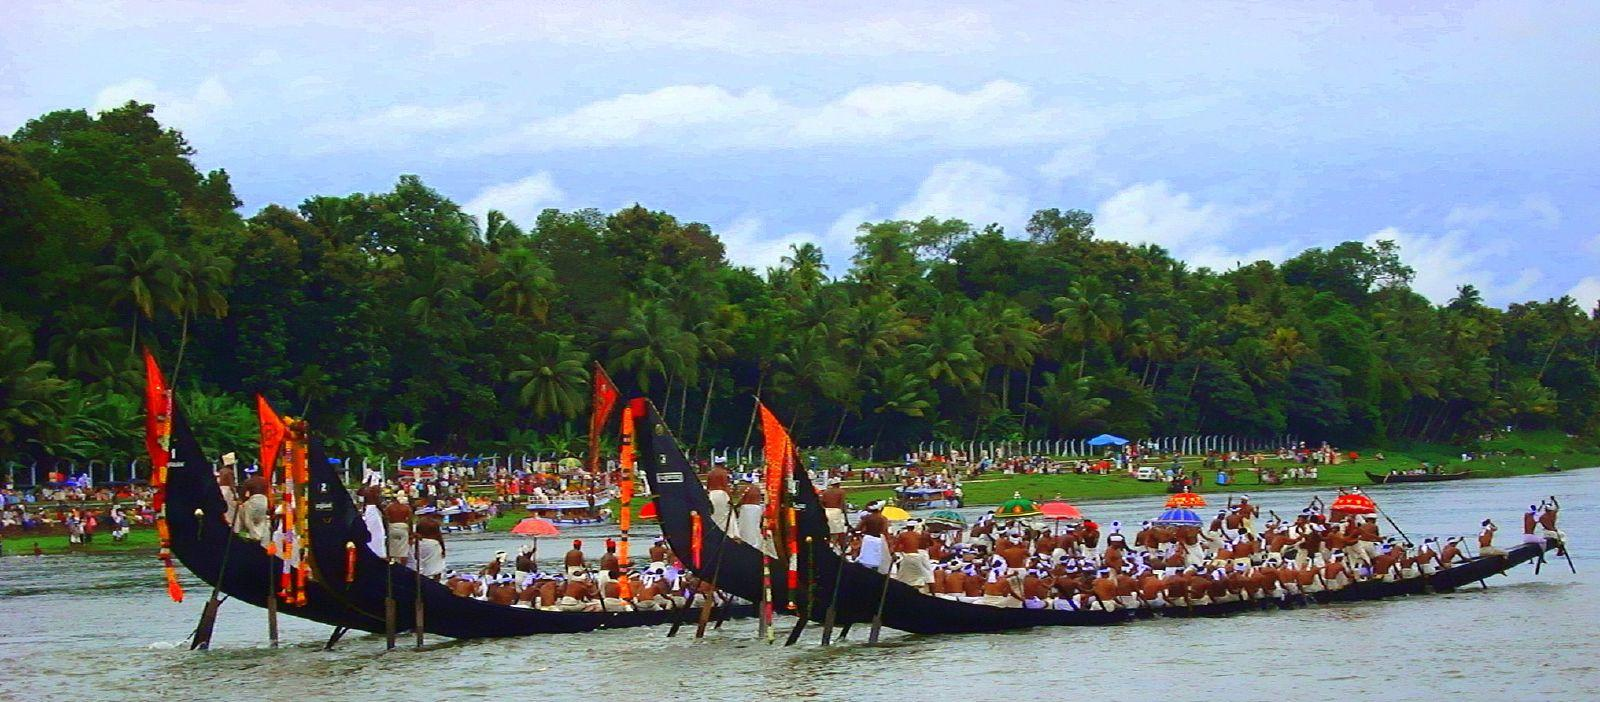 Kerala's snake boat likely to sail across River Thames